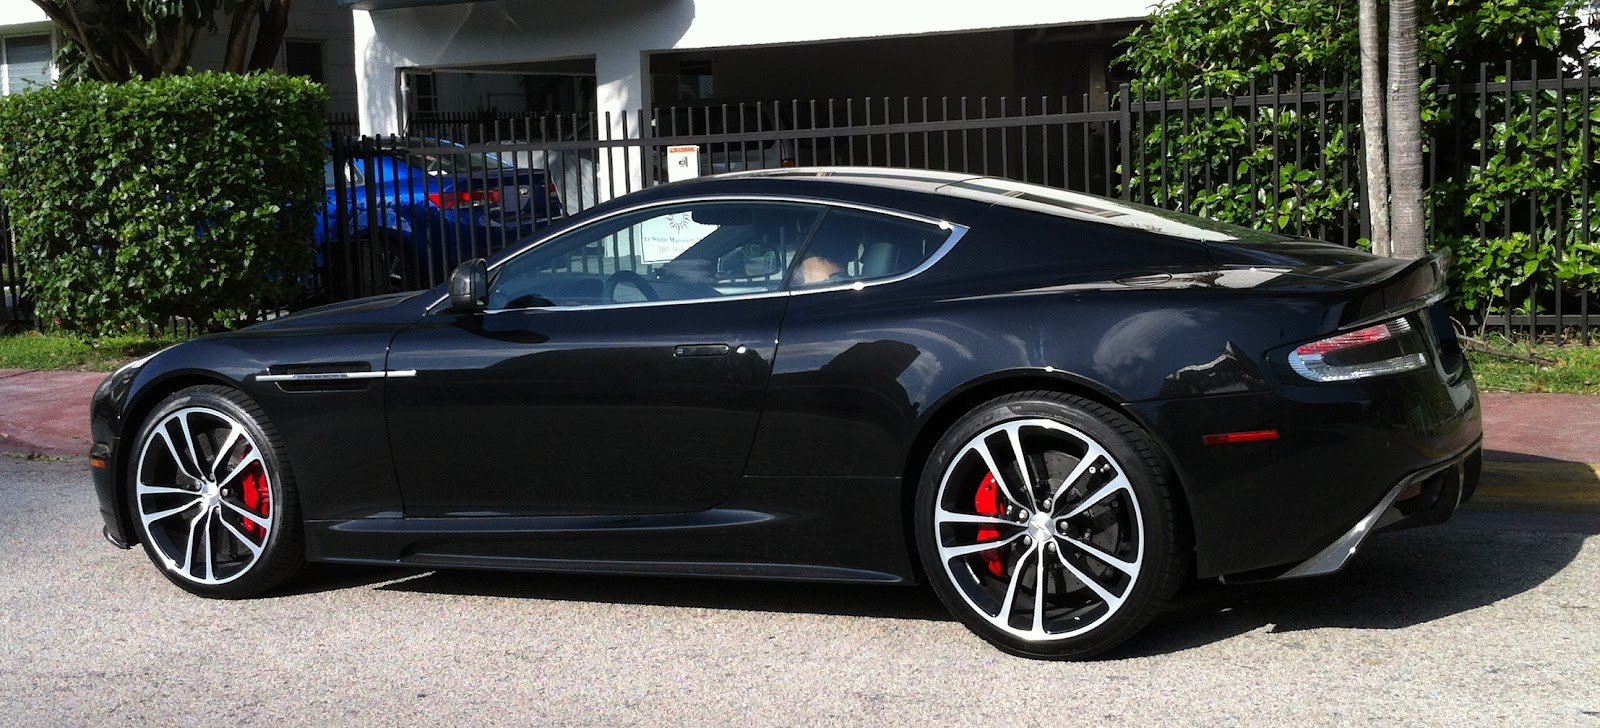 Black Aston Martin Dbs V12 Exotic Cars On The Streets Of